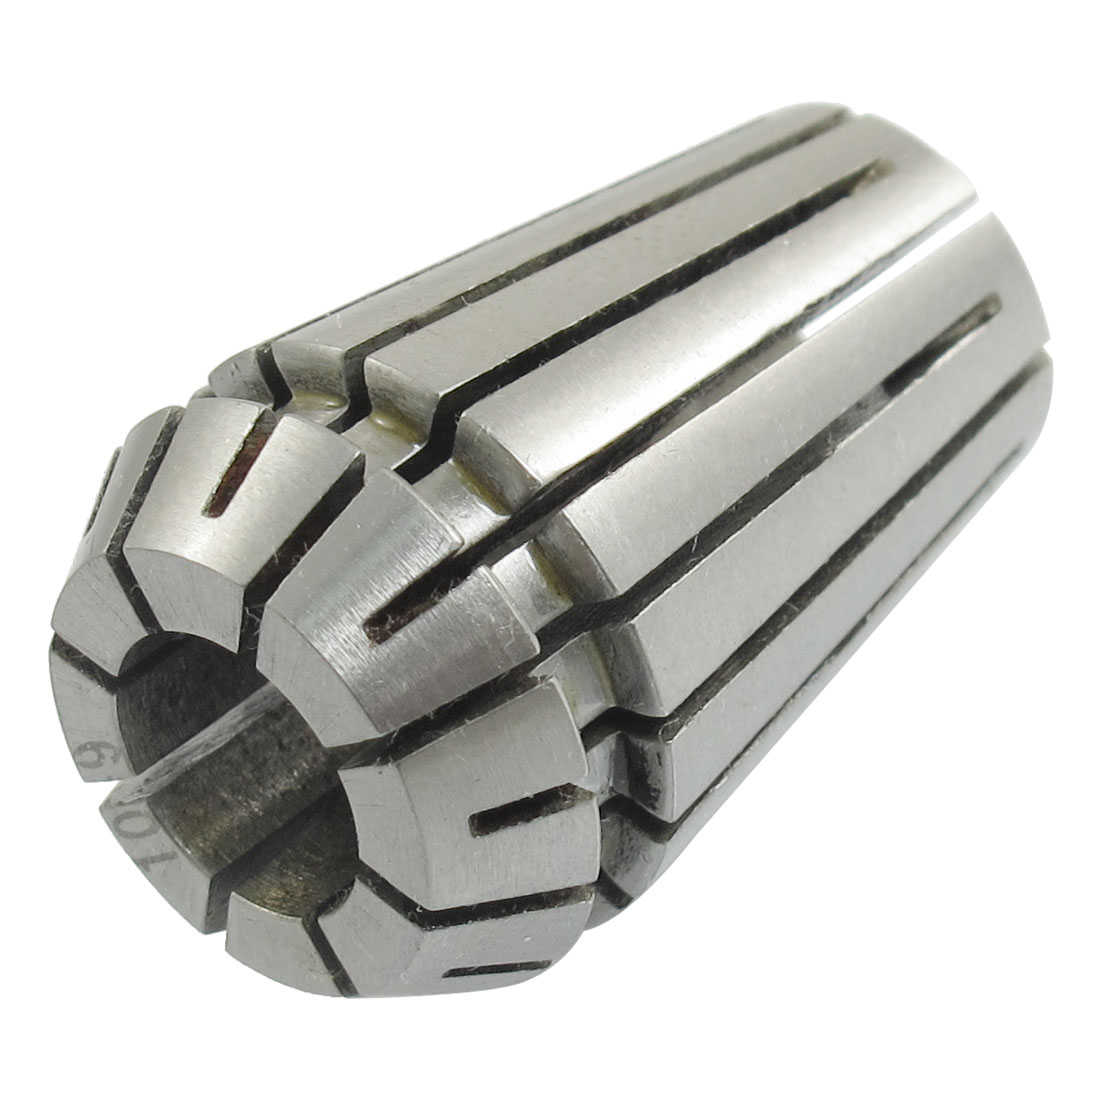 Unique Bargains 25/64' Clamping Dia. Stainless Steel Boring Spring Collet Chuck ER20-10